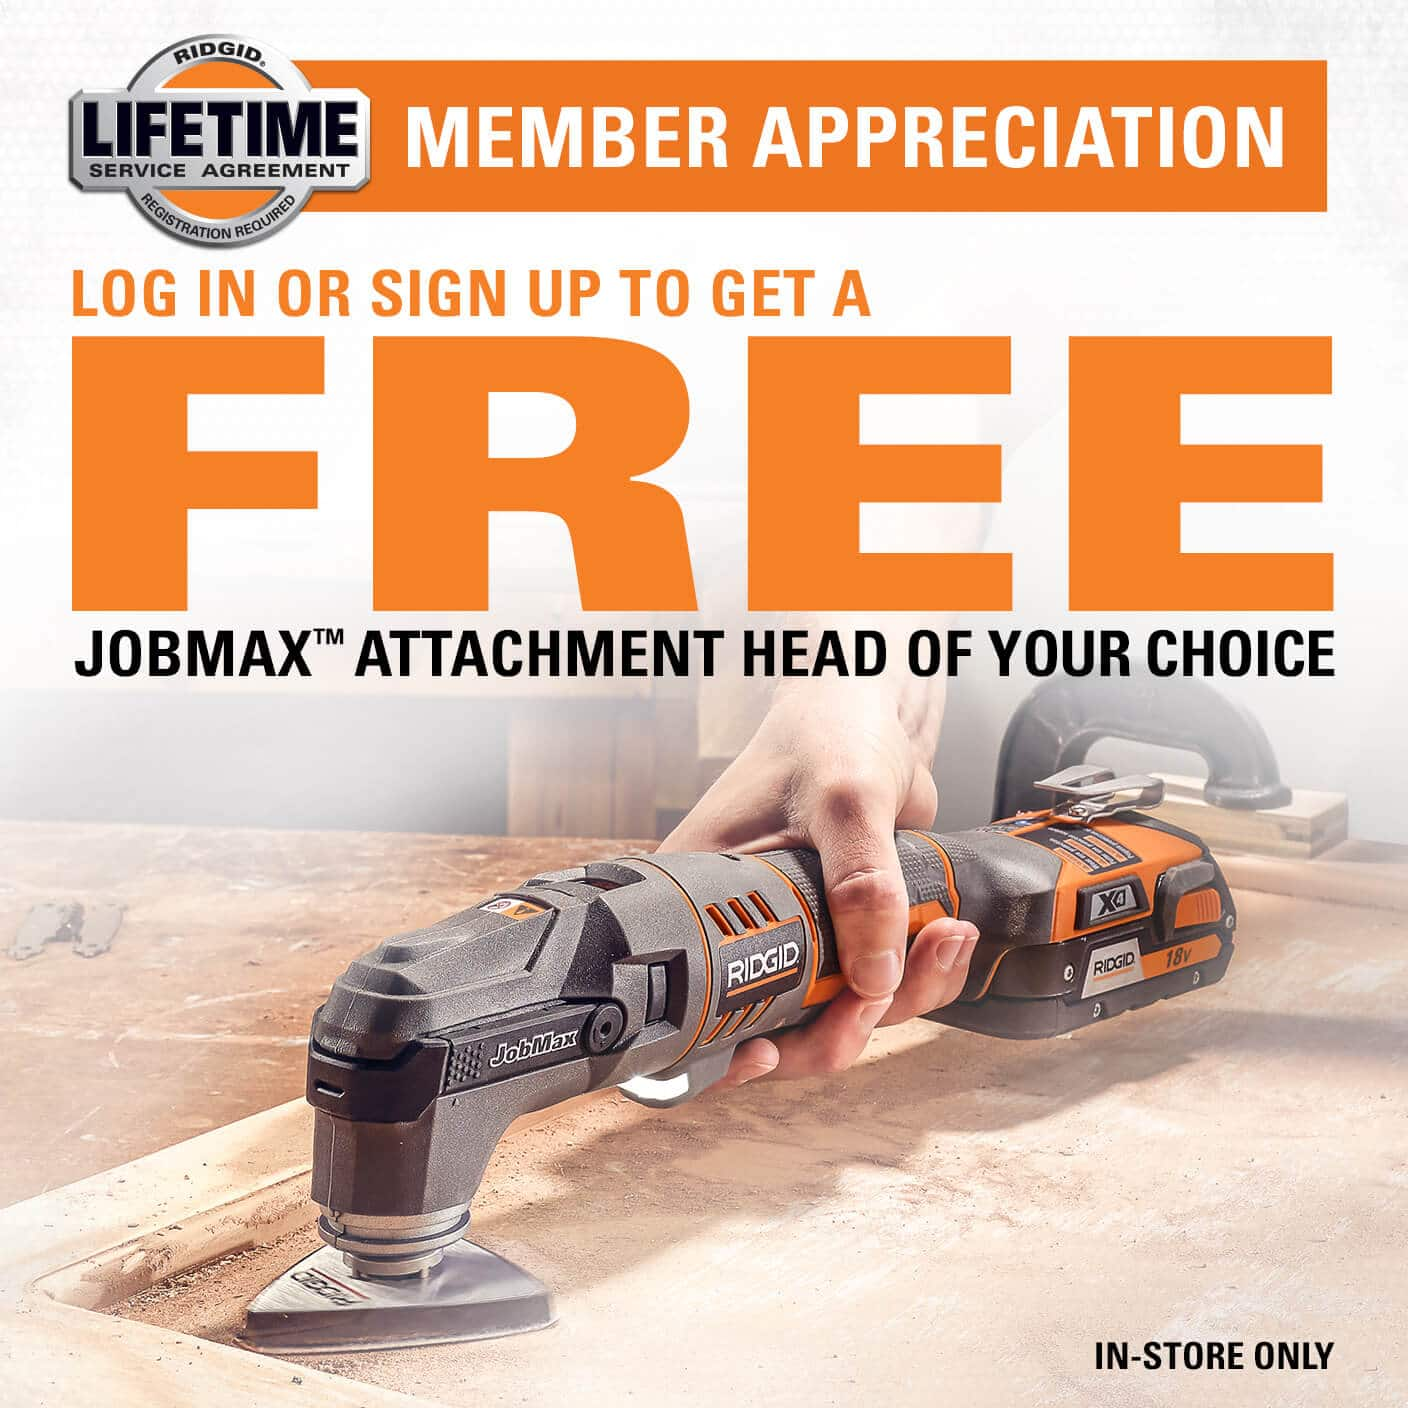 Free Jobmax accessory when you purchase a Jobmax console (instore only Home Depot)